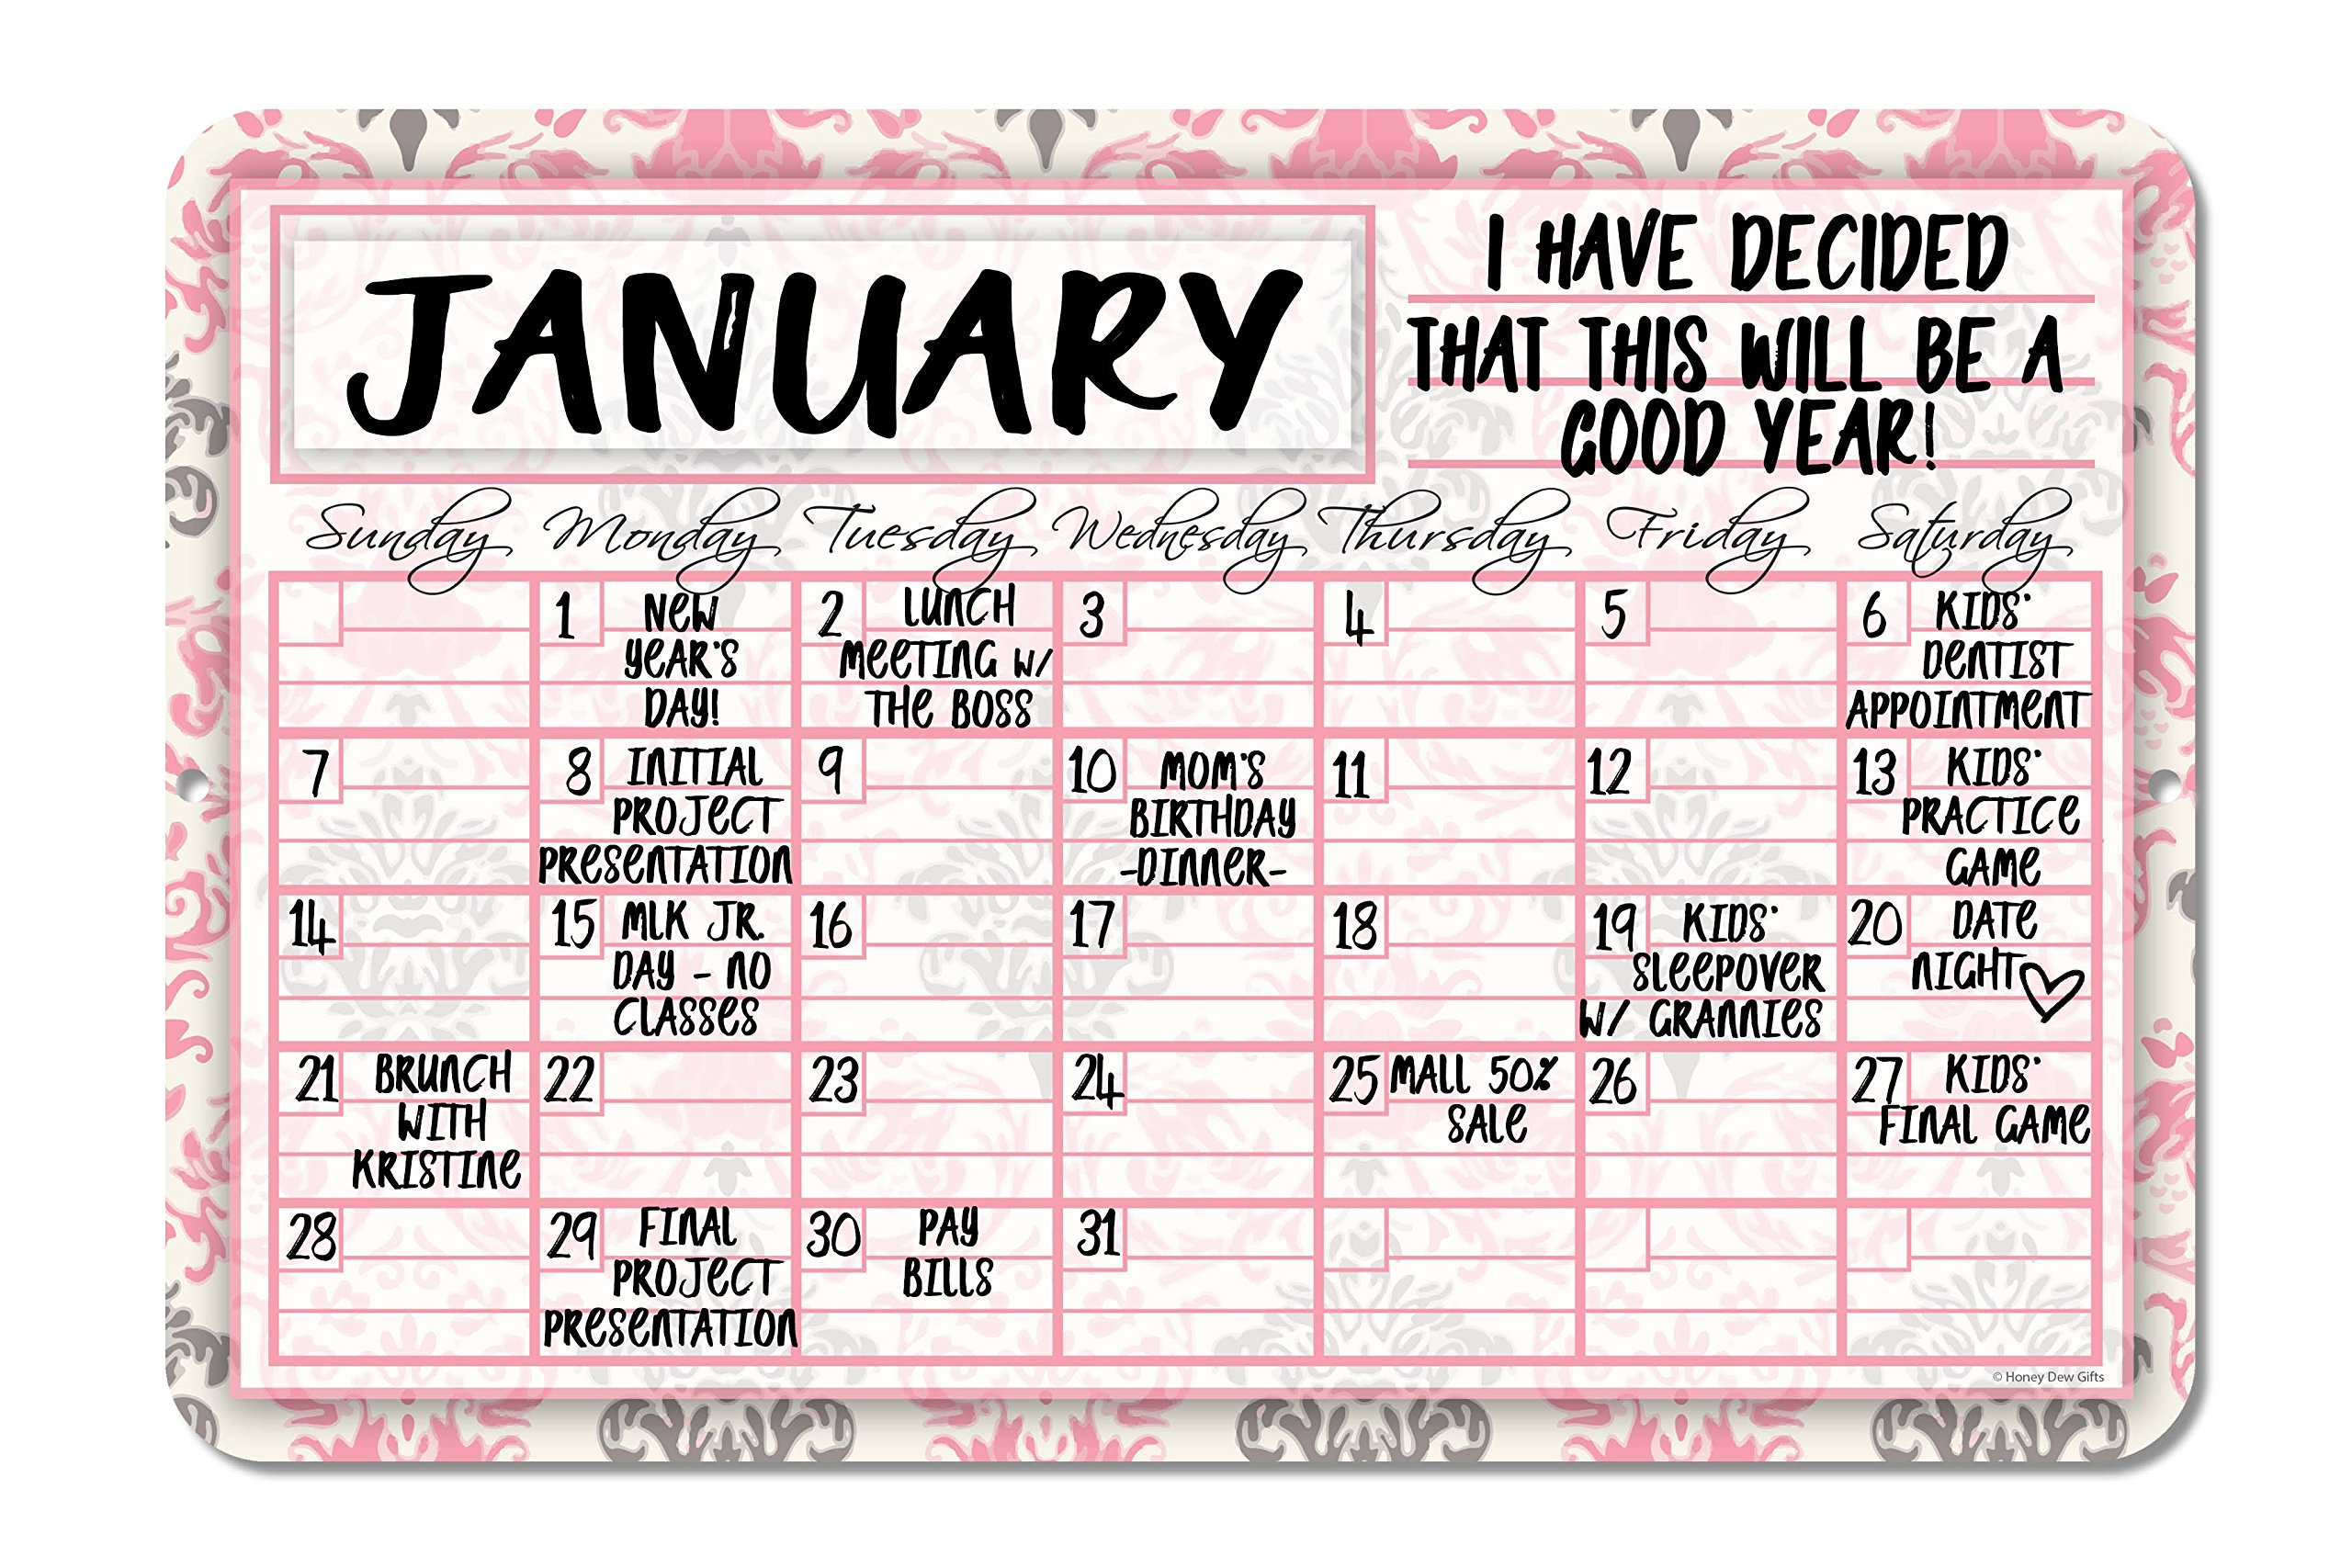 Floral Pink Decorative Wall Calendar Planning Board - Reusable Easy Clean